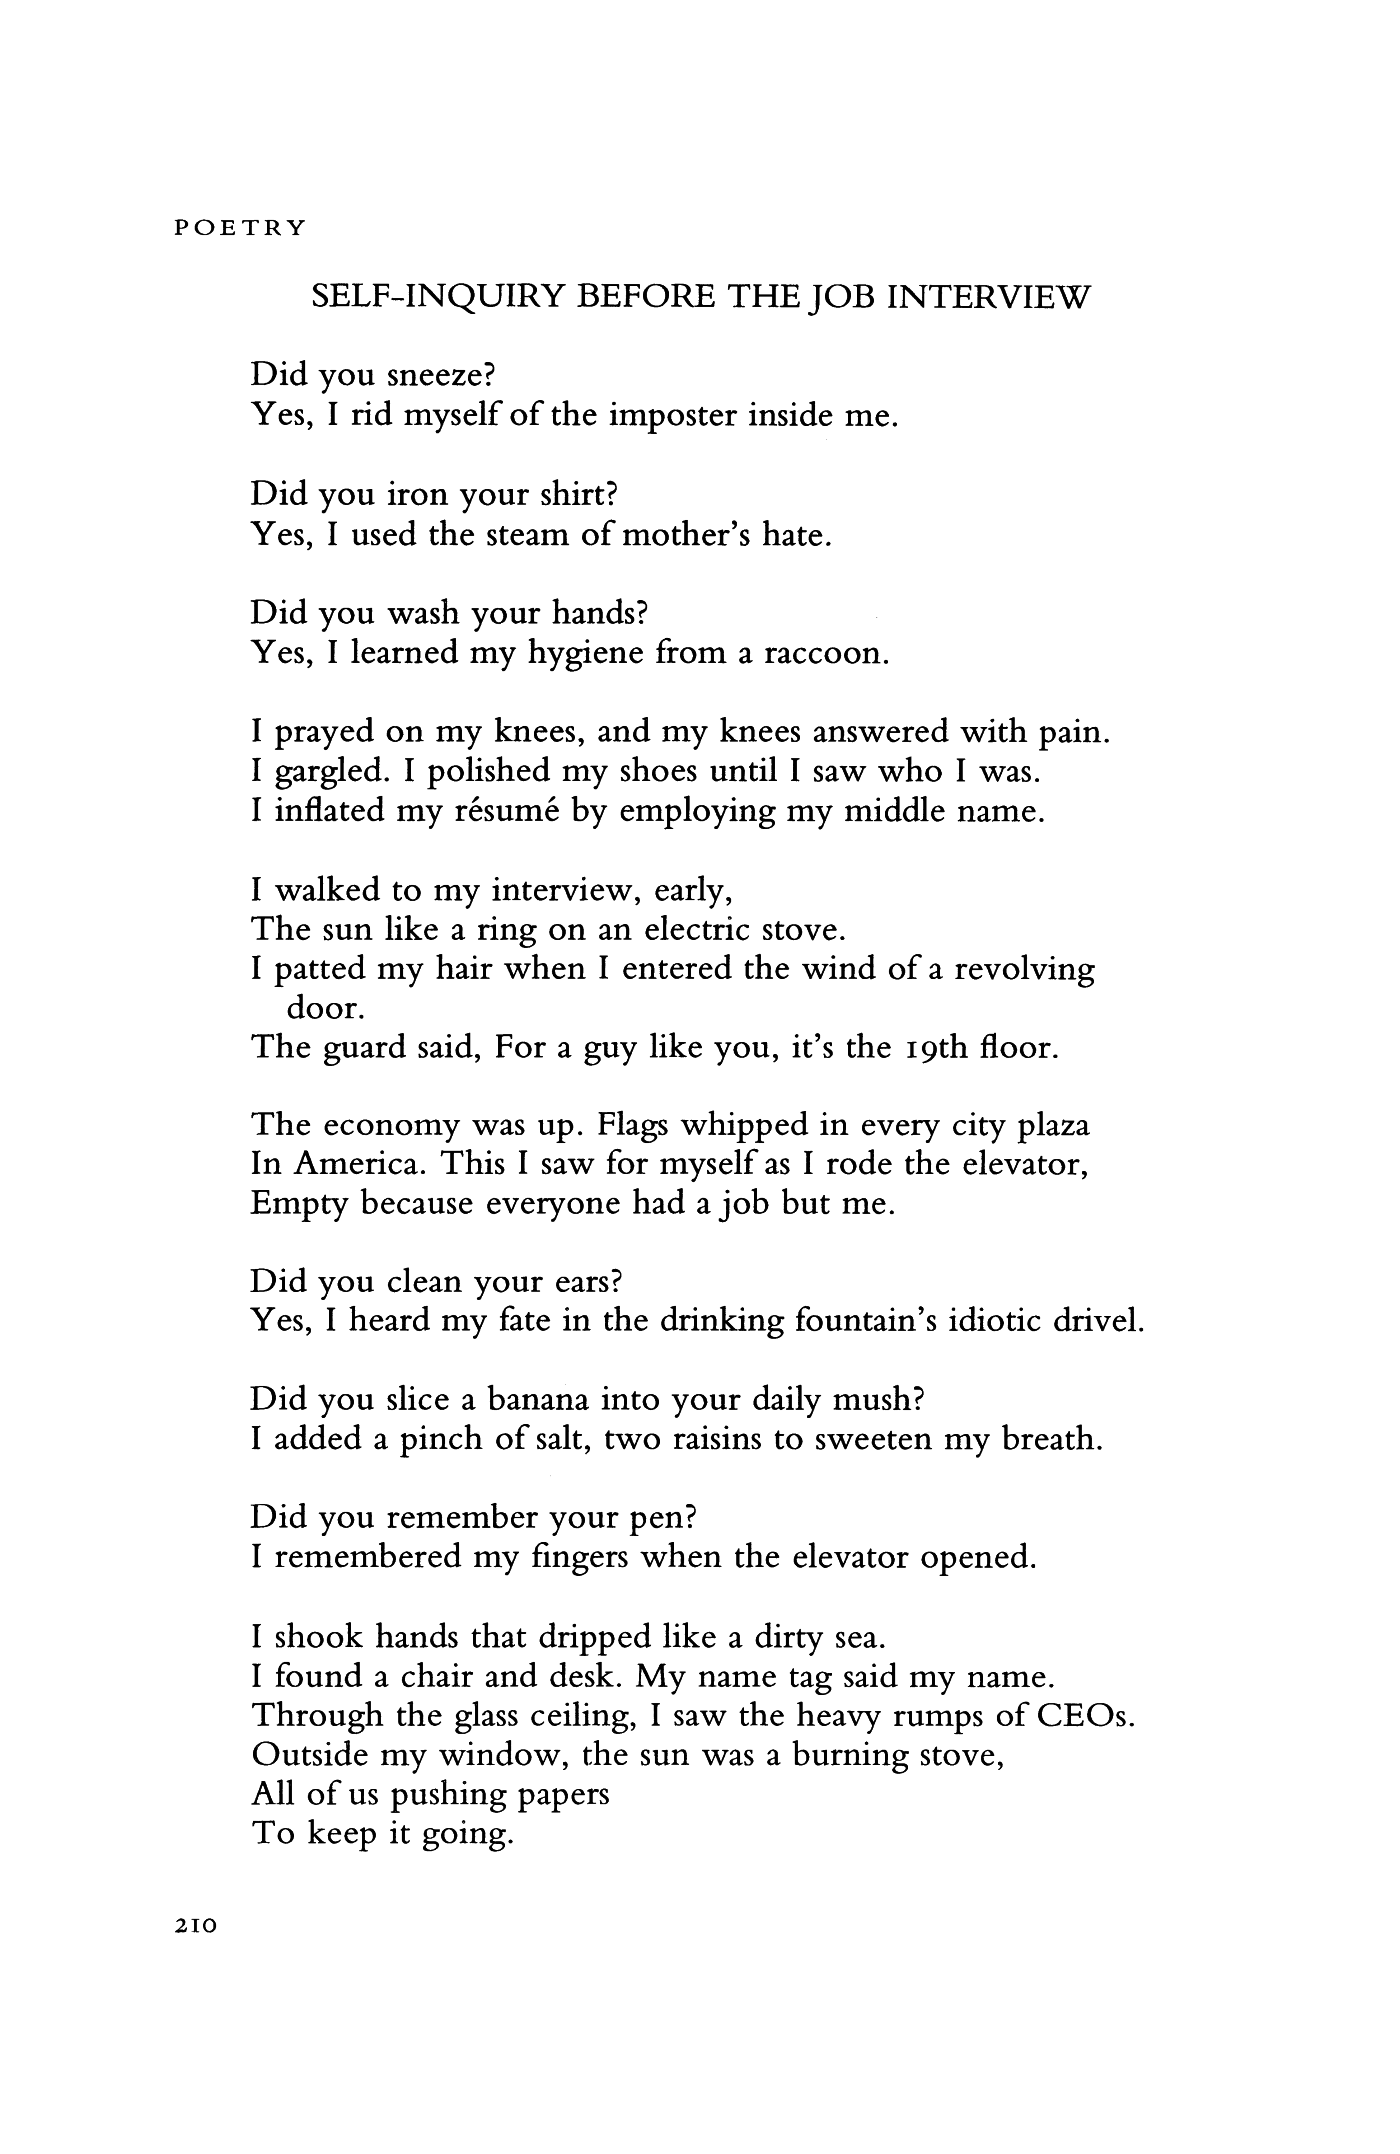 Self-Inquiry before the Job Interview by Gary Soto   Poetry